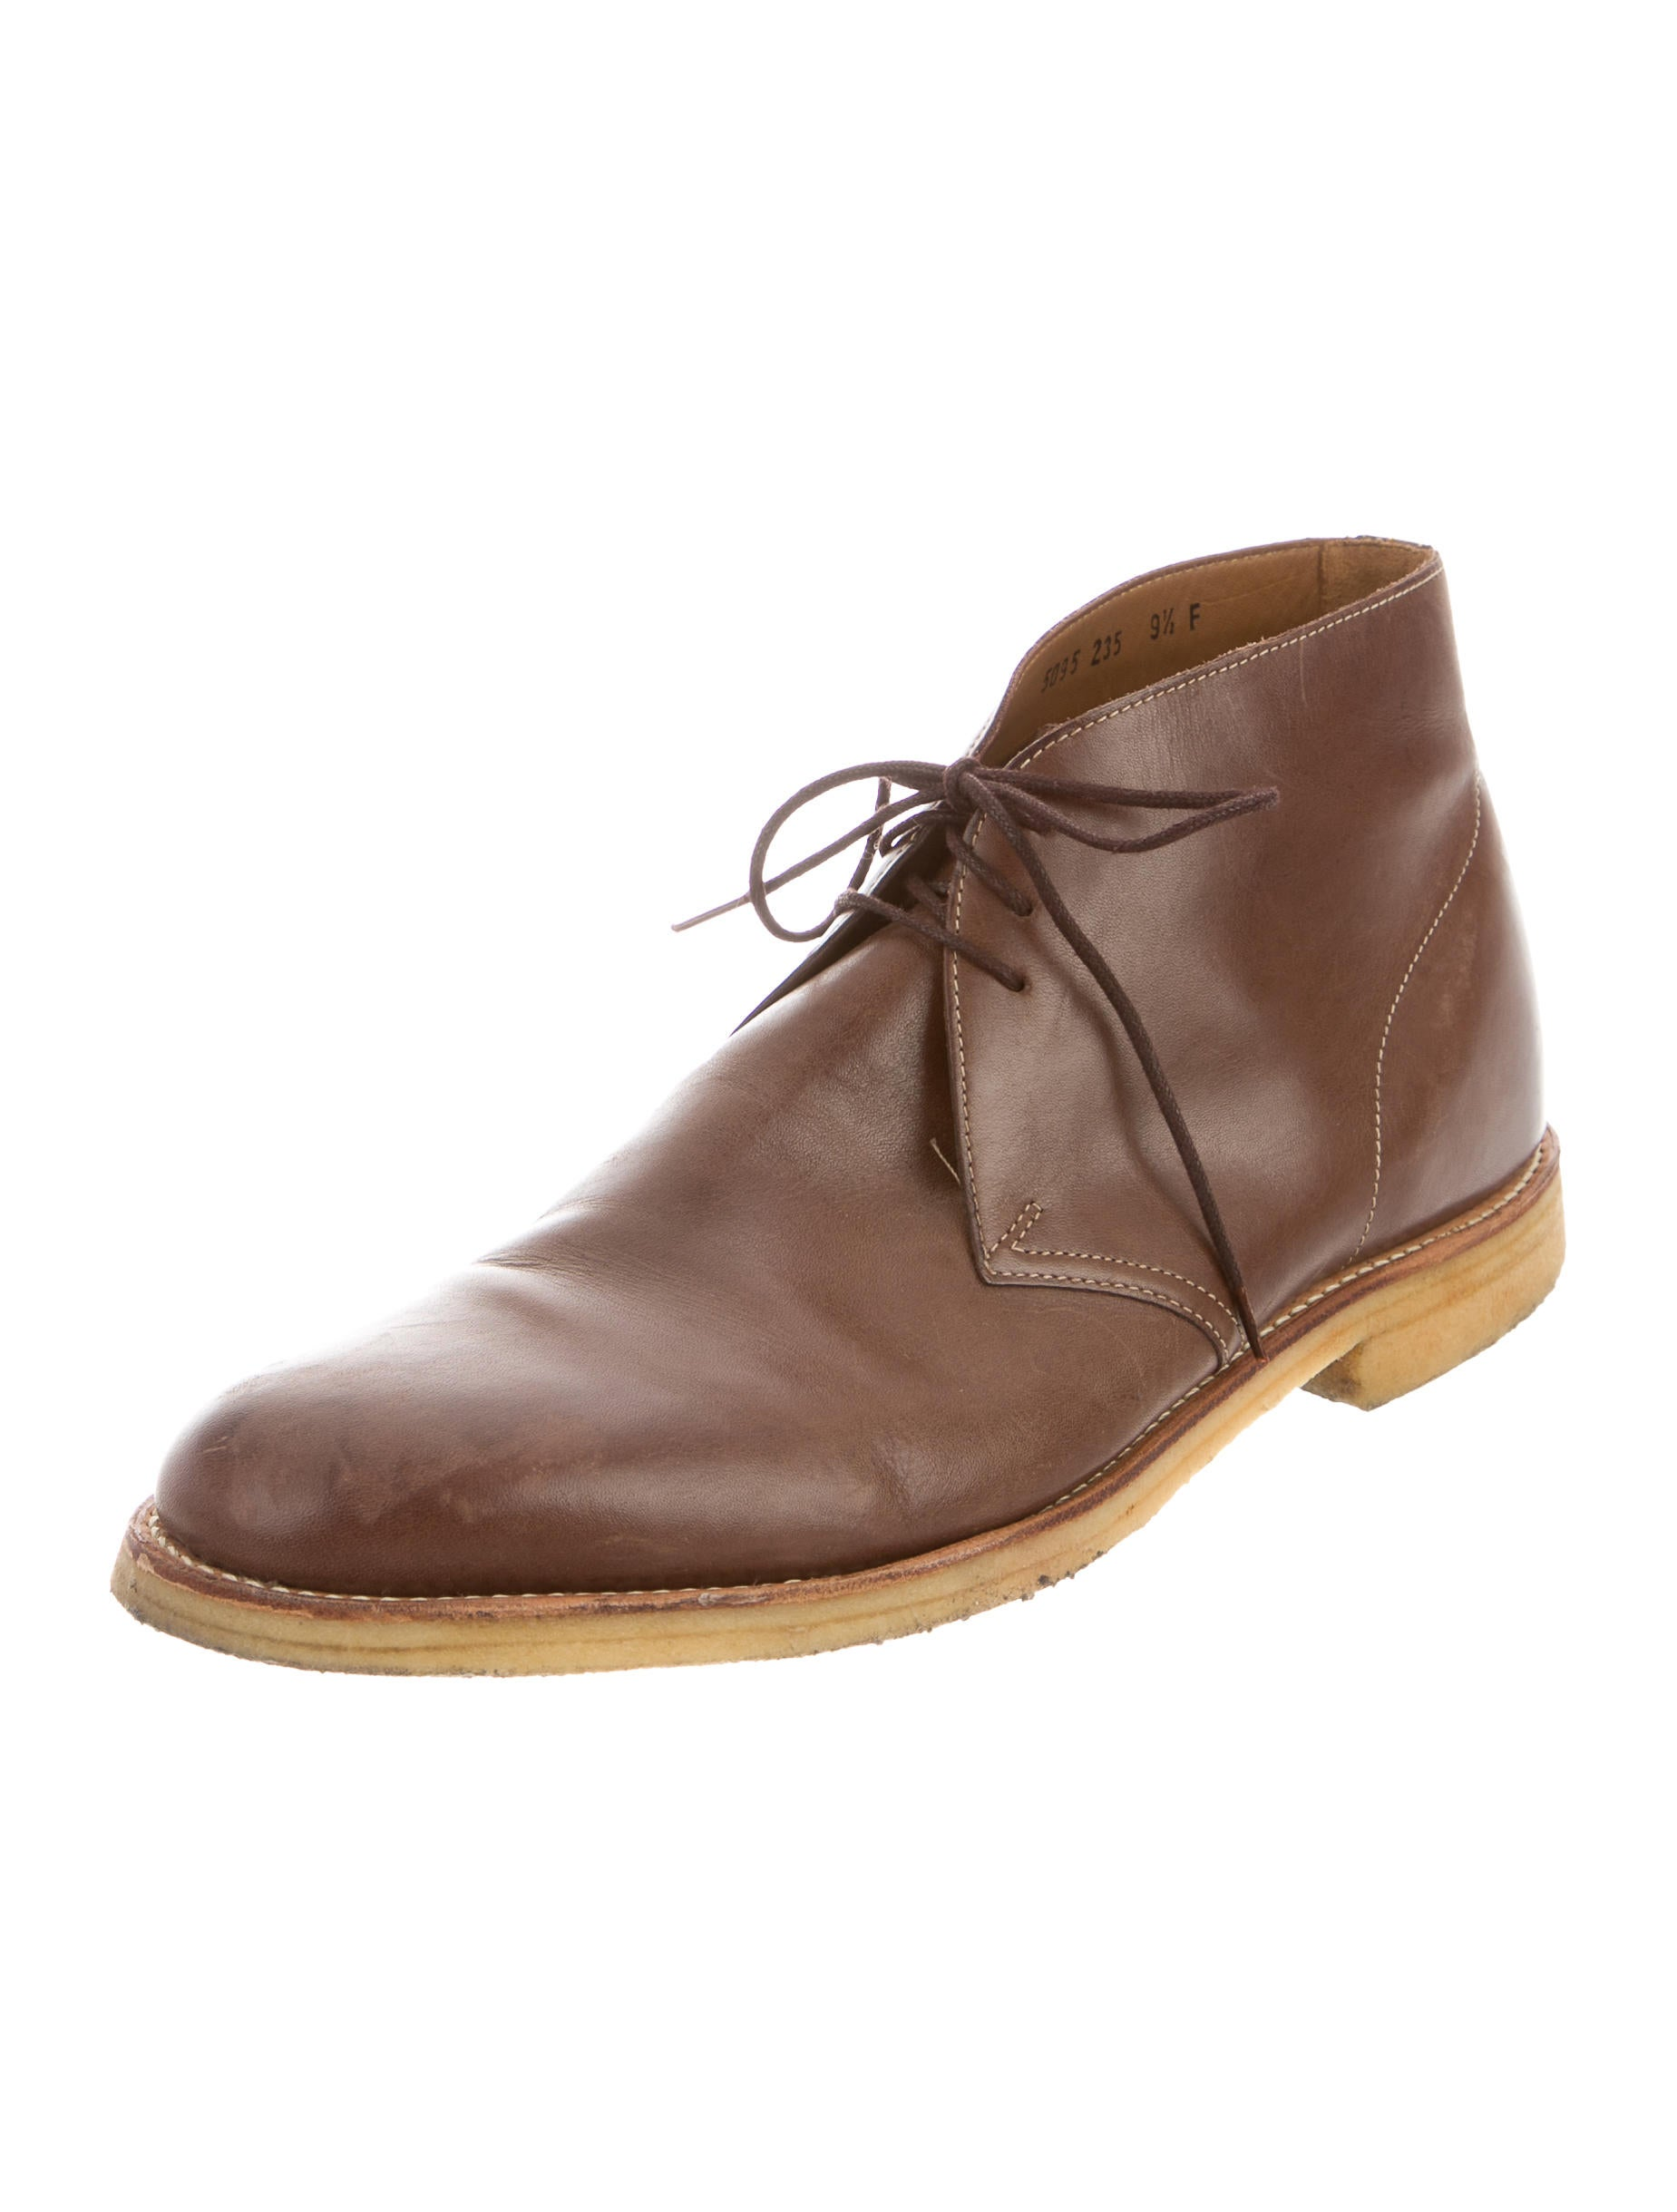 grenson leather desert boots shoes wgren20069 the